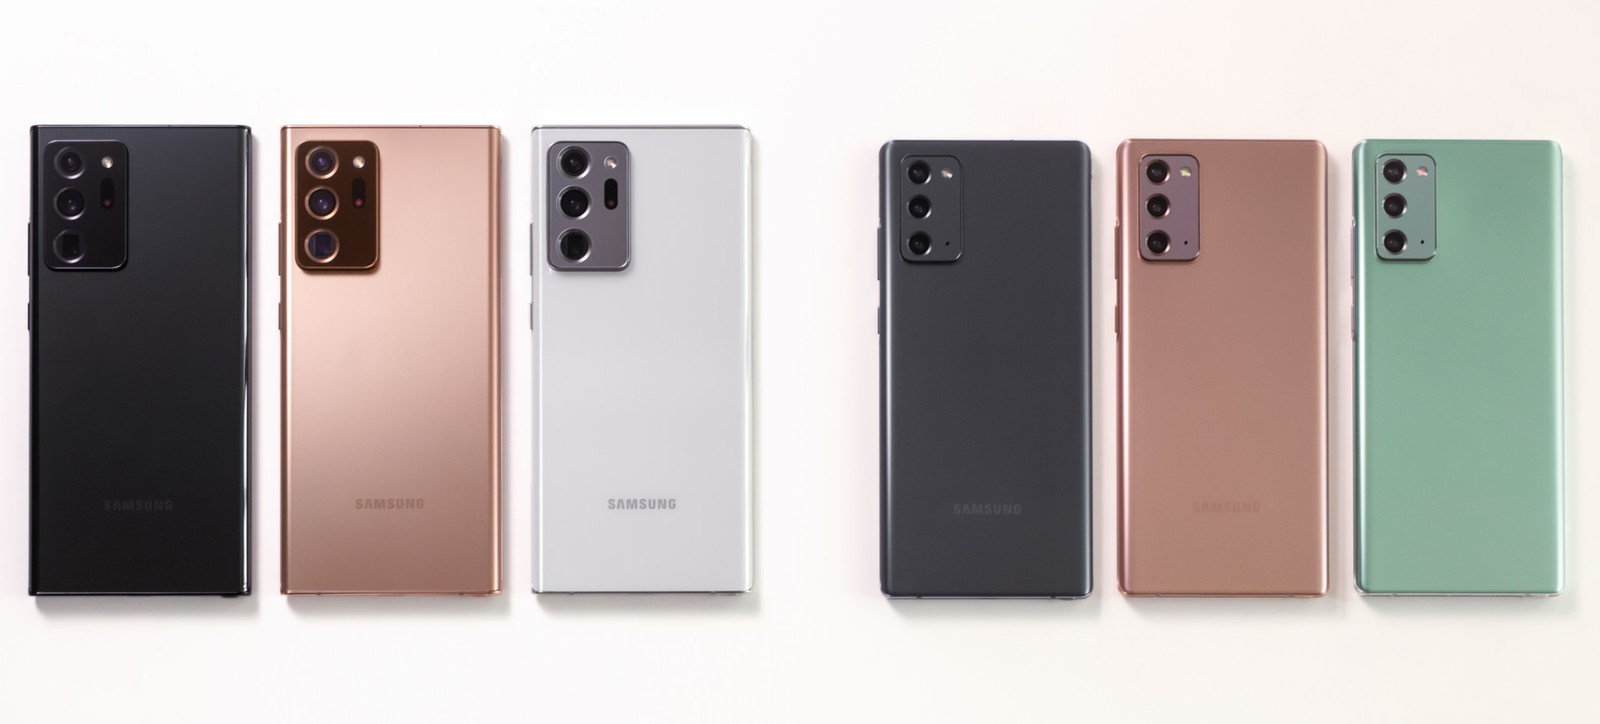 Samsung презентовала Galaxy Note20 и Galaxy Note20 Ultra